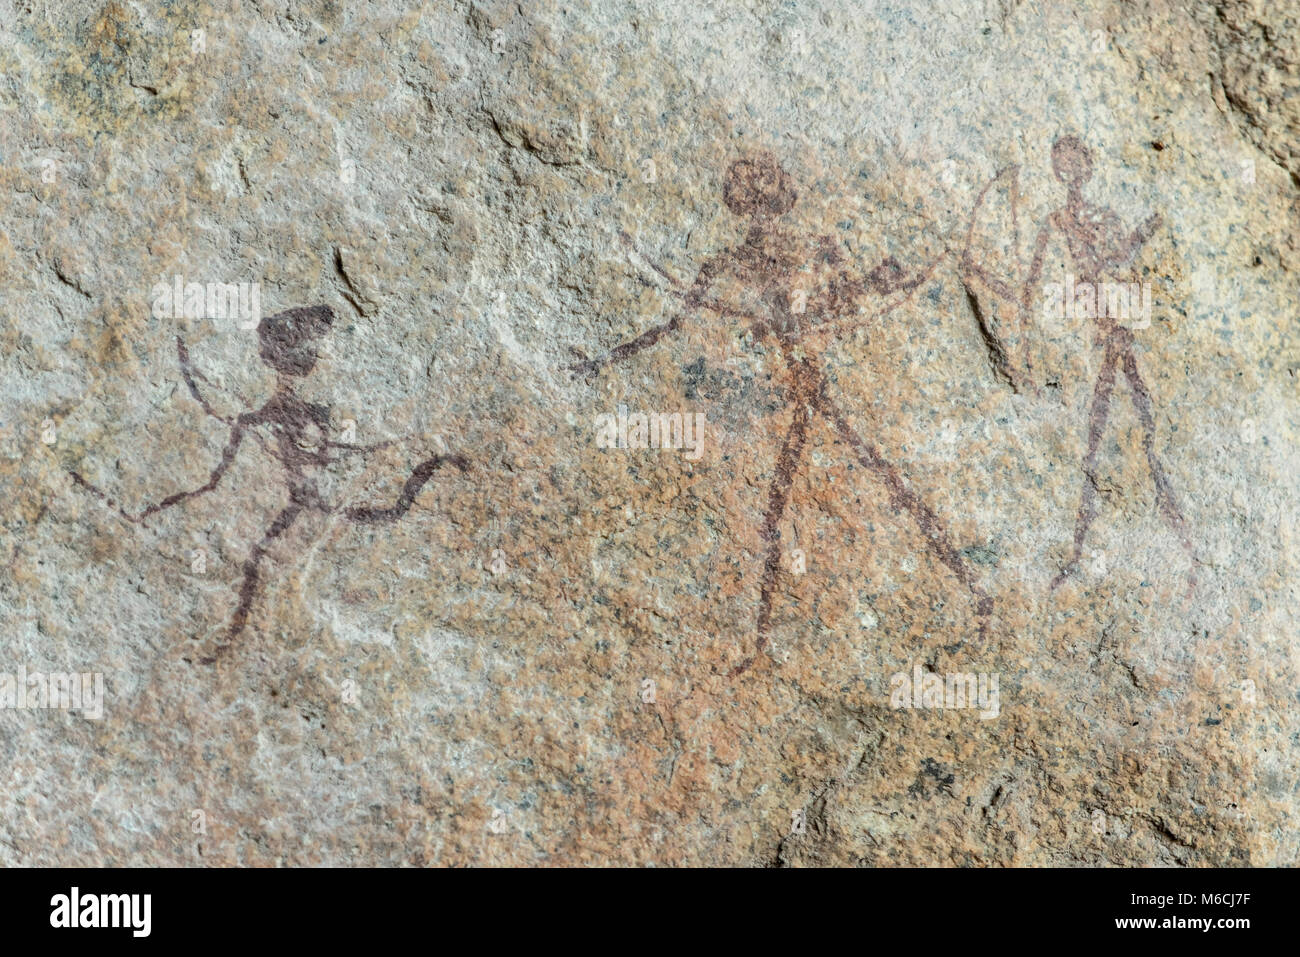 Gobabis Rock Art by the San Bushmen, Ghoha Hills or Bushman Hill, about 5,000 years old, Savuti, Chobe National - Stock Image